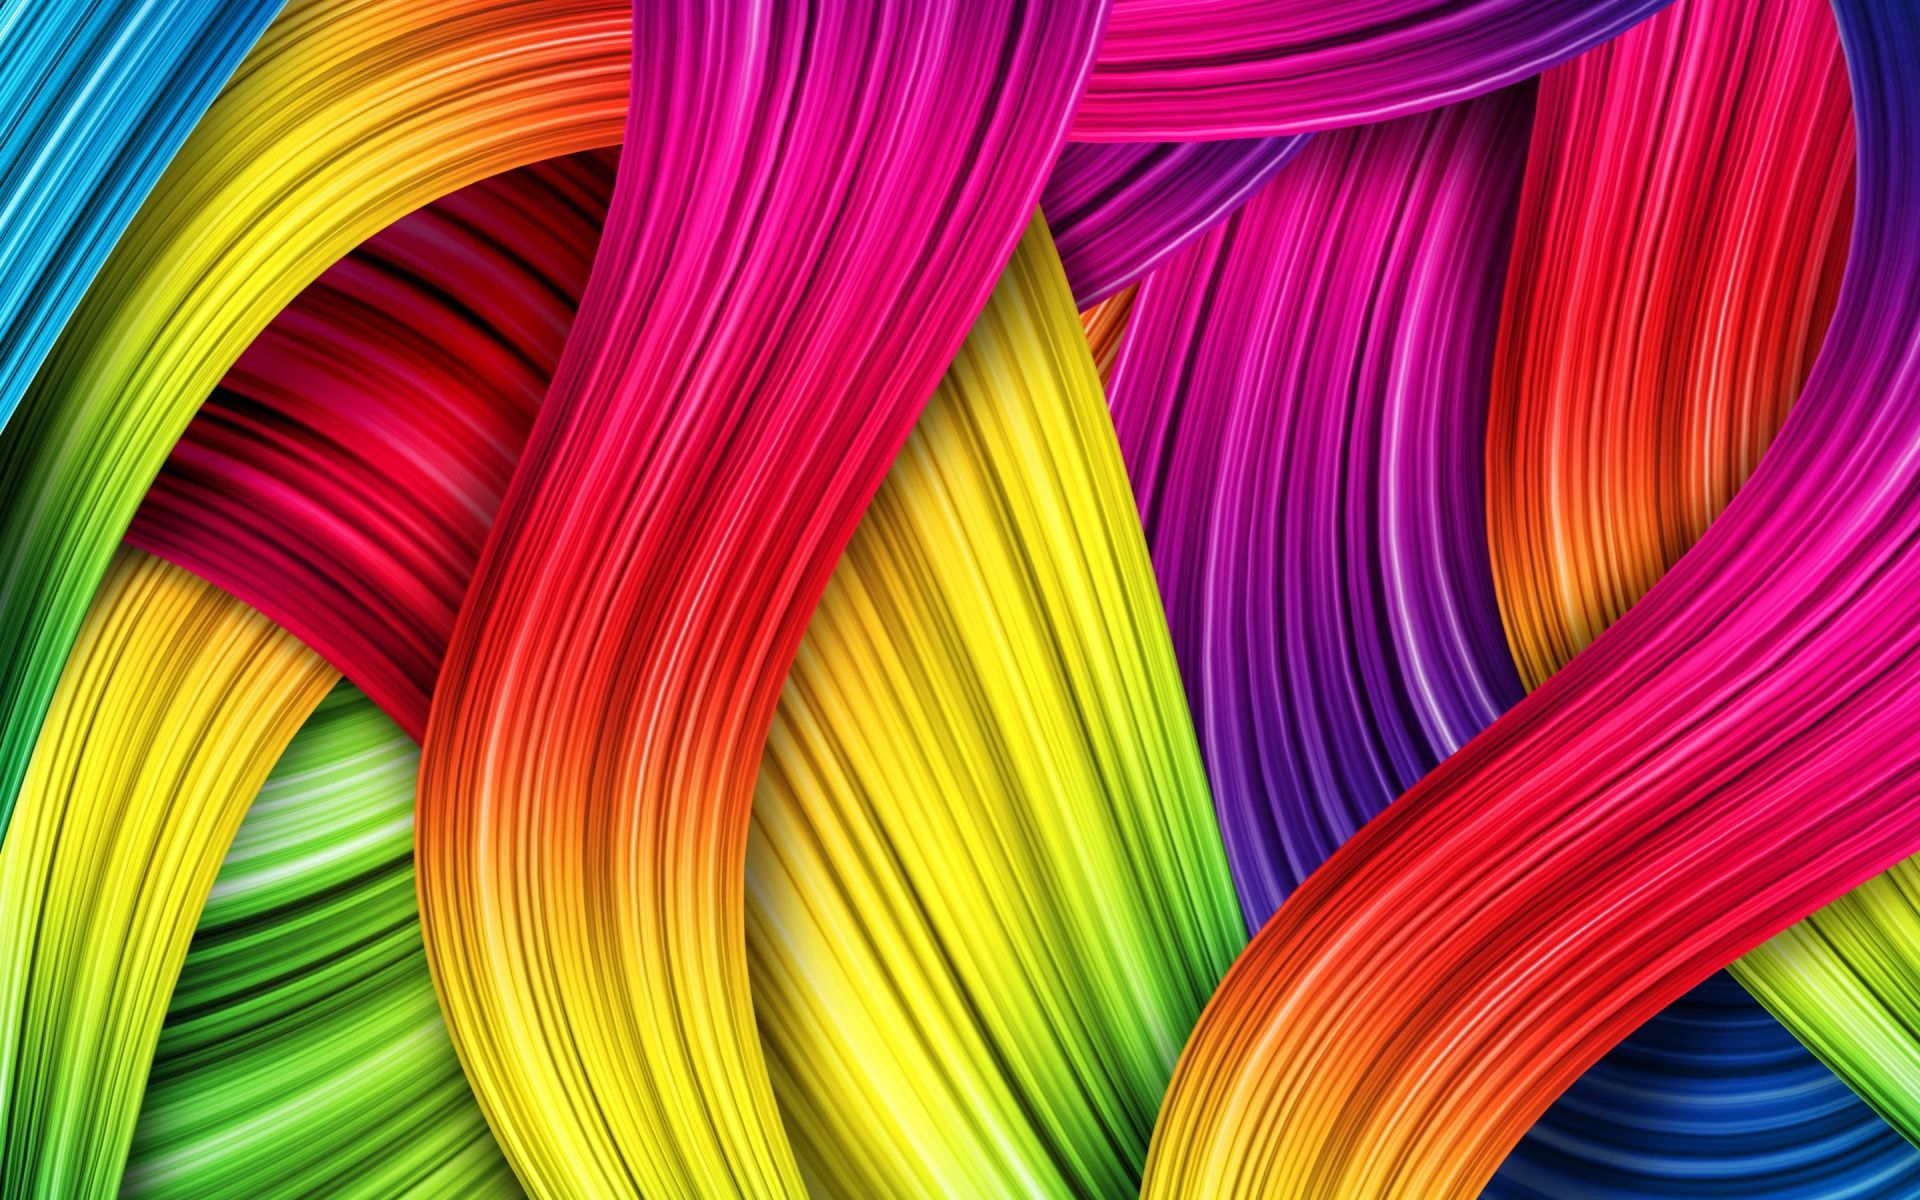 Colorful cool abstract wallpaper backgrounds 2918 wallpaper colorful cool abstract wallpaper backgrounds 2918 wallpaper voltagebd Gallery